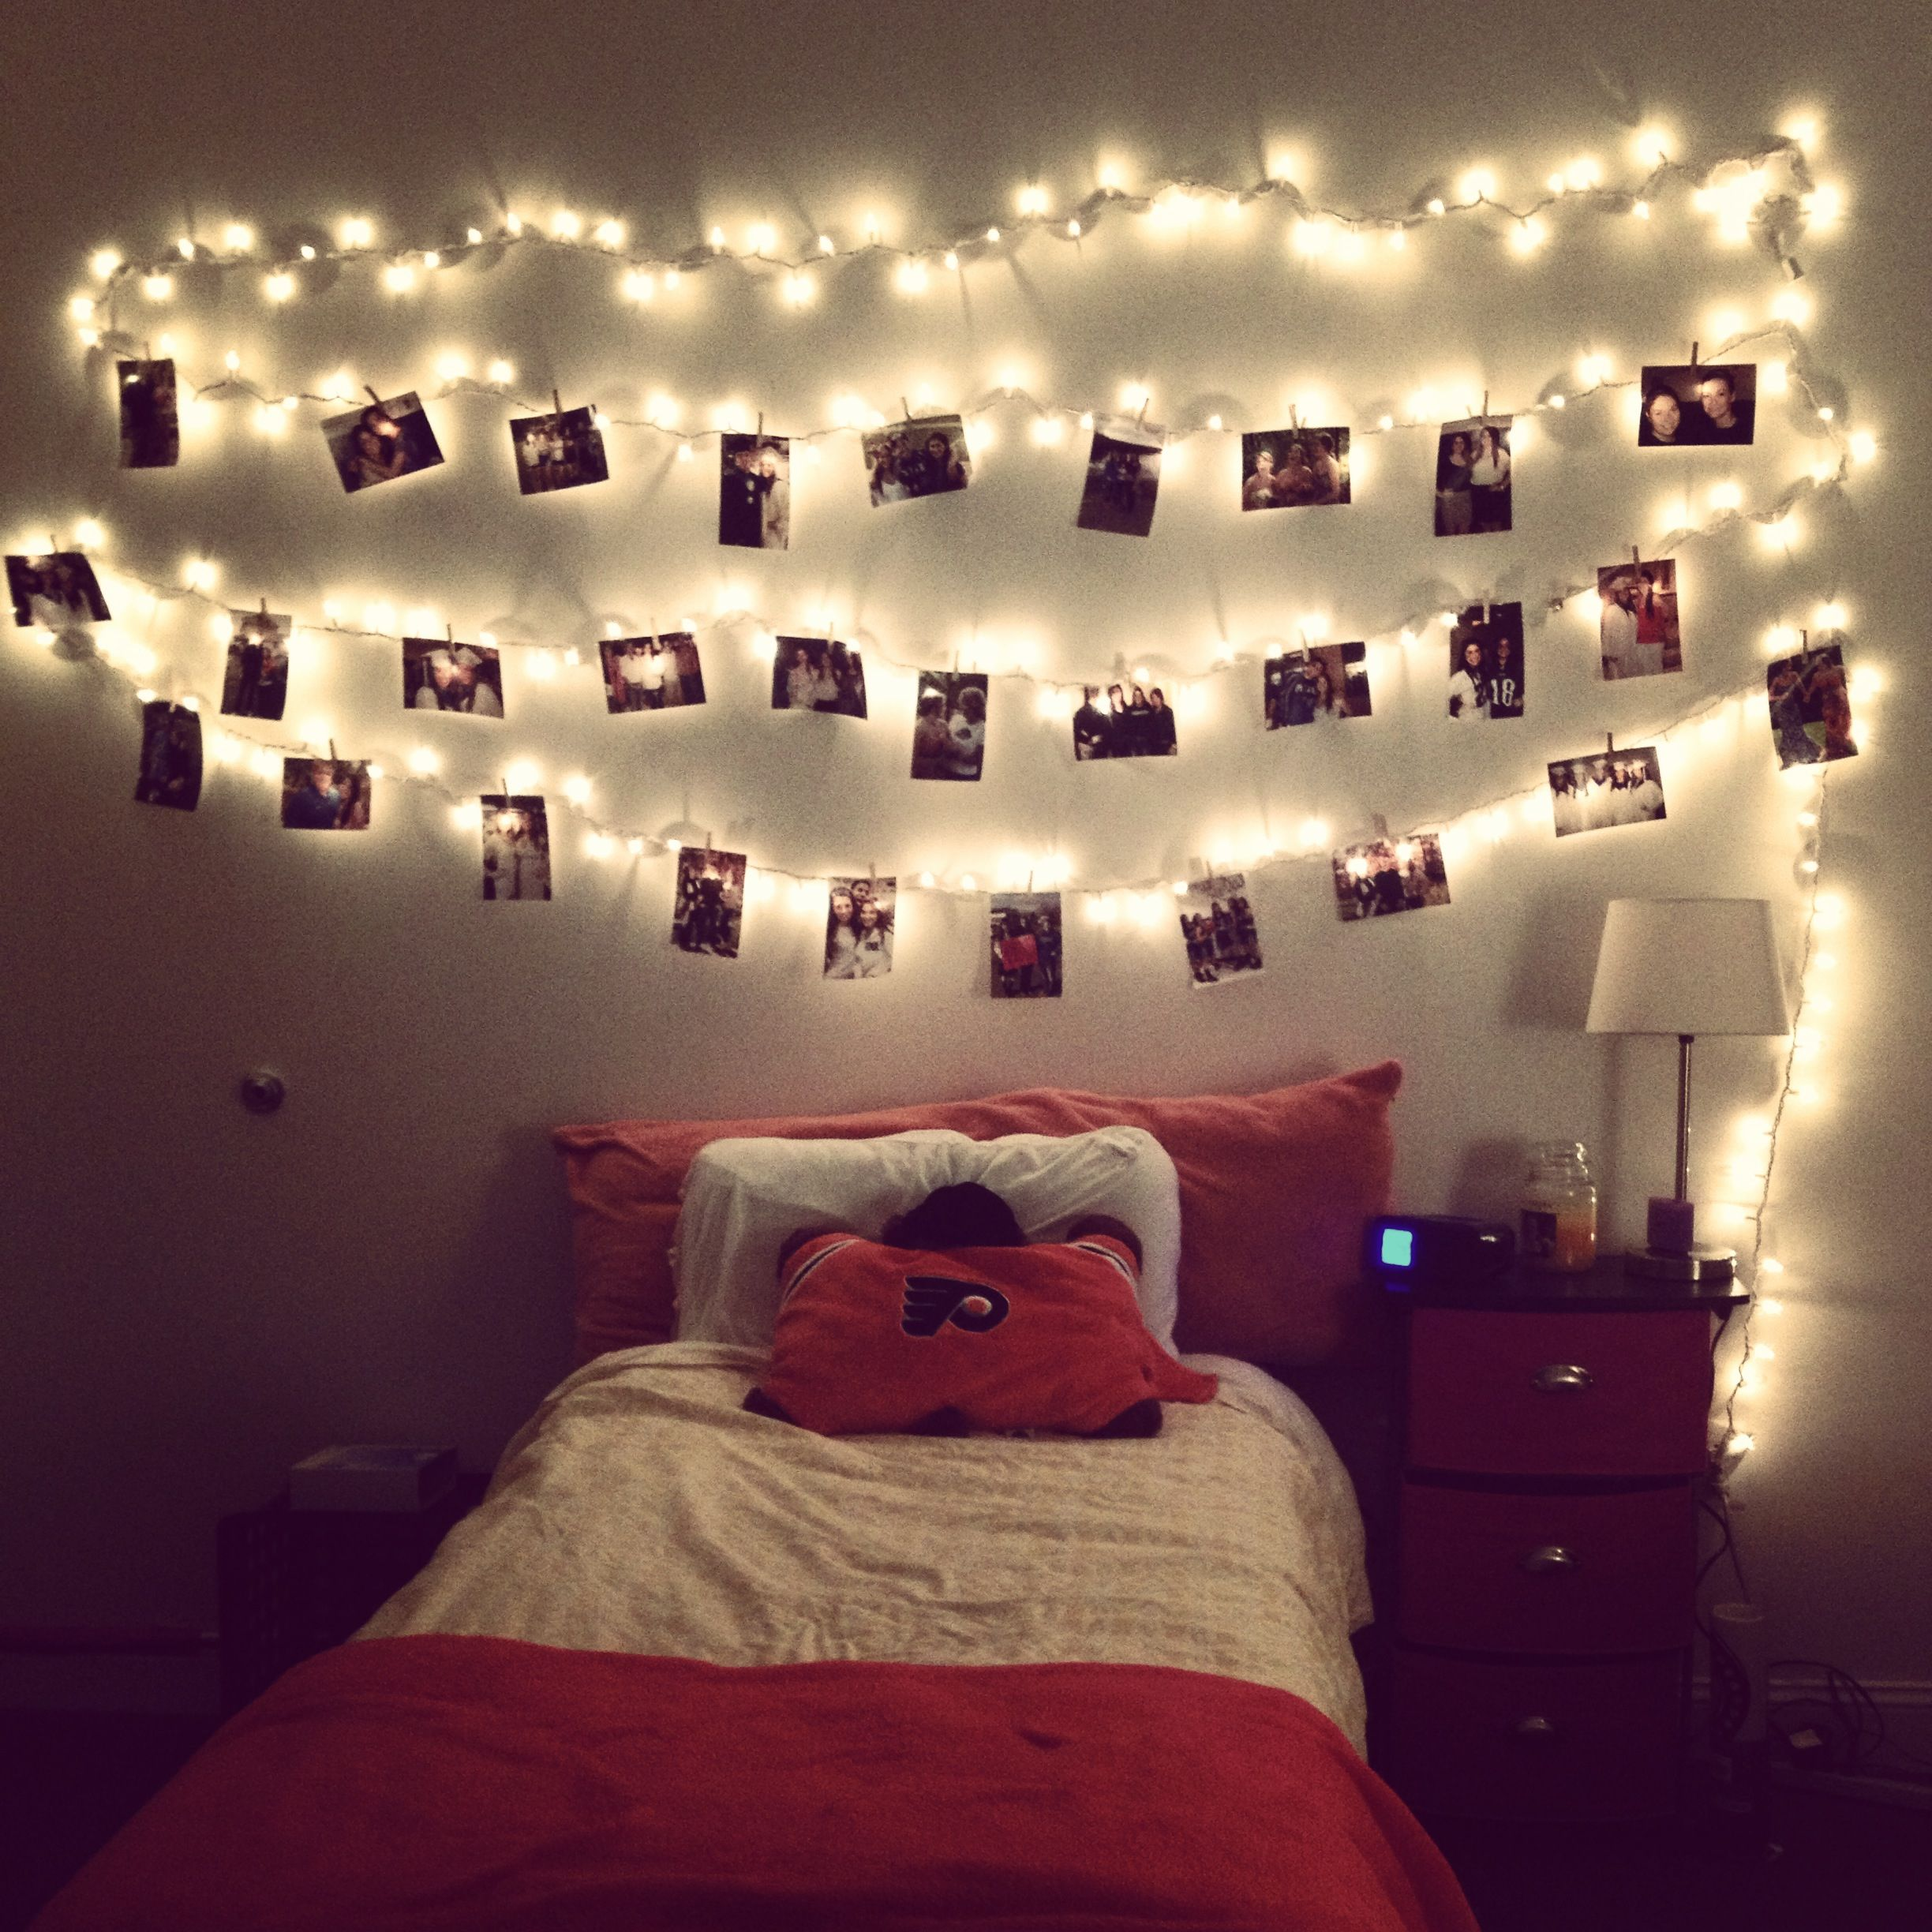 dorm room wall decor pinterest. hang lights and cute pictures with clothes pins, love this instead of like a gallery · teen bedroomsromantic bedroomsdorm room decorationslight dorm wall decor pinterest